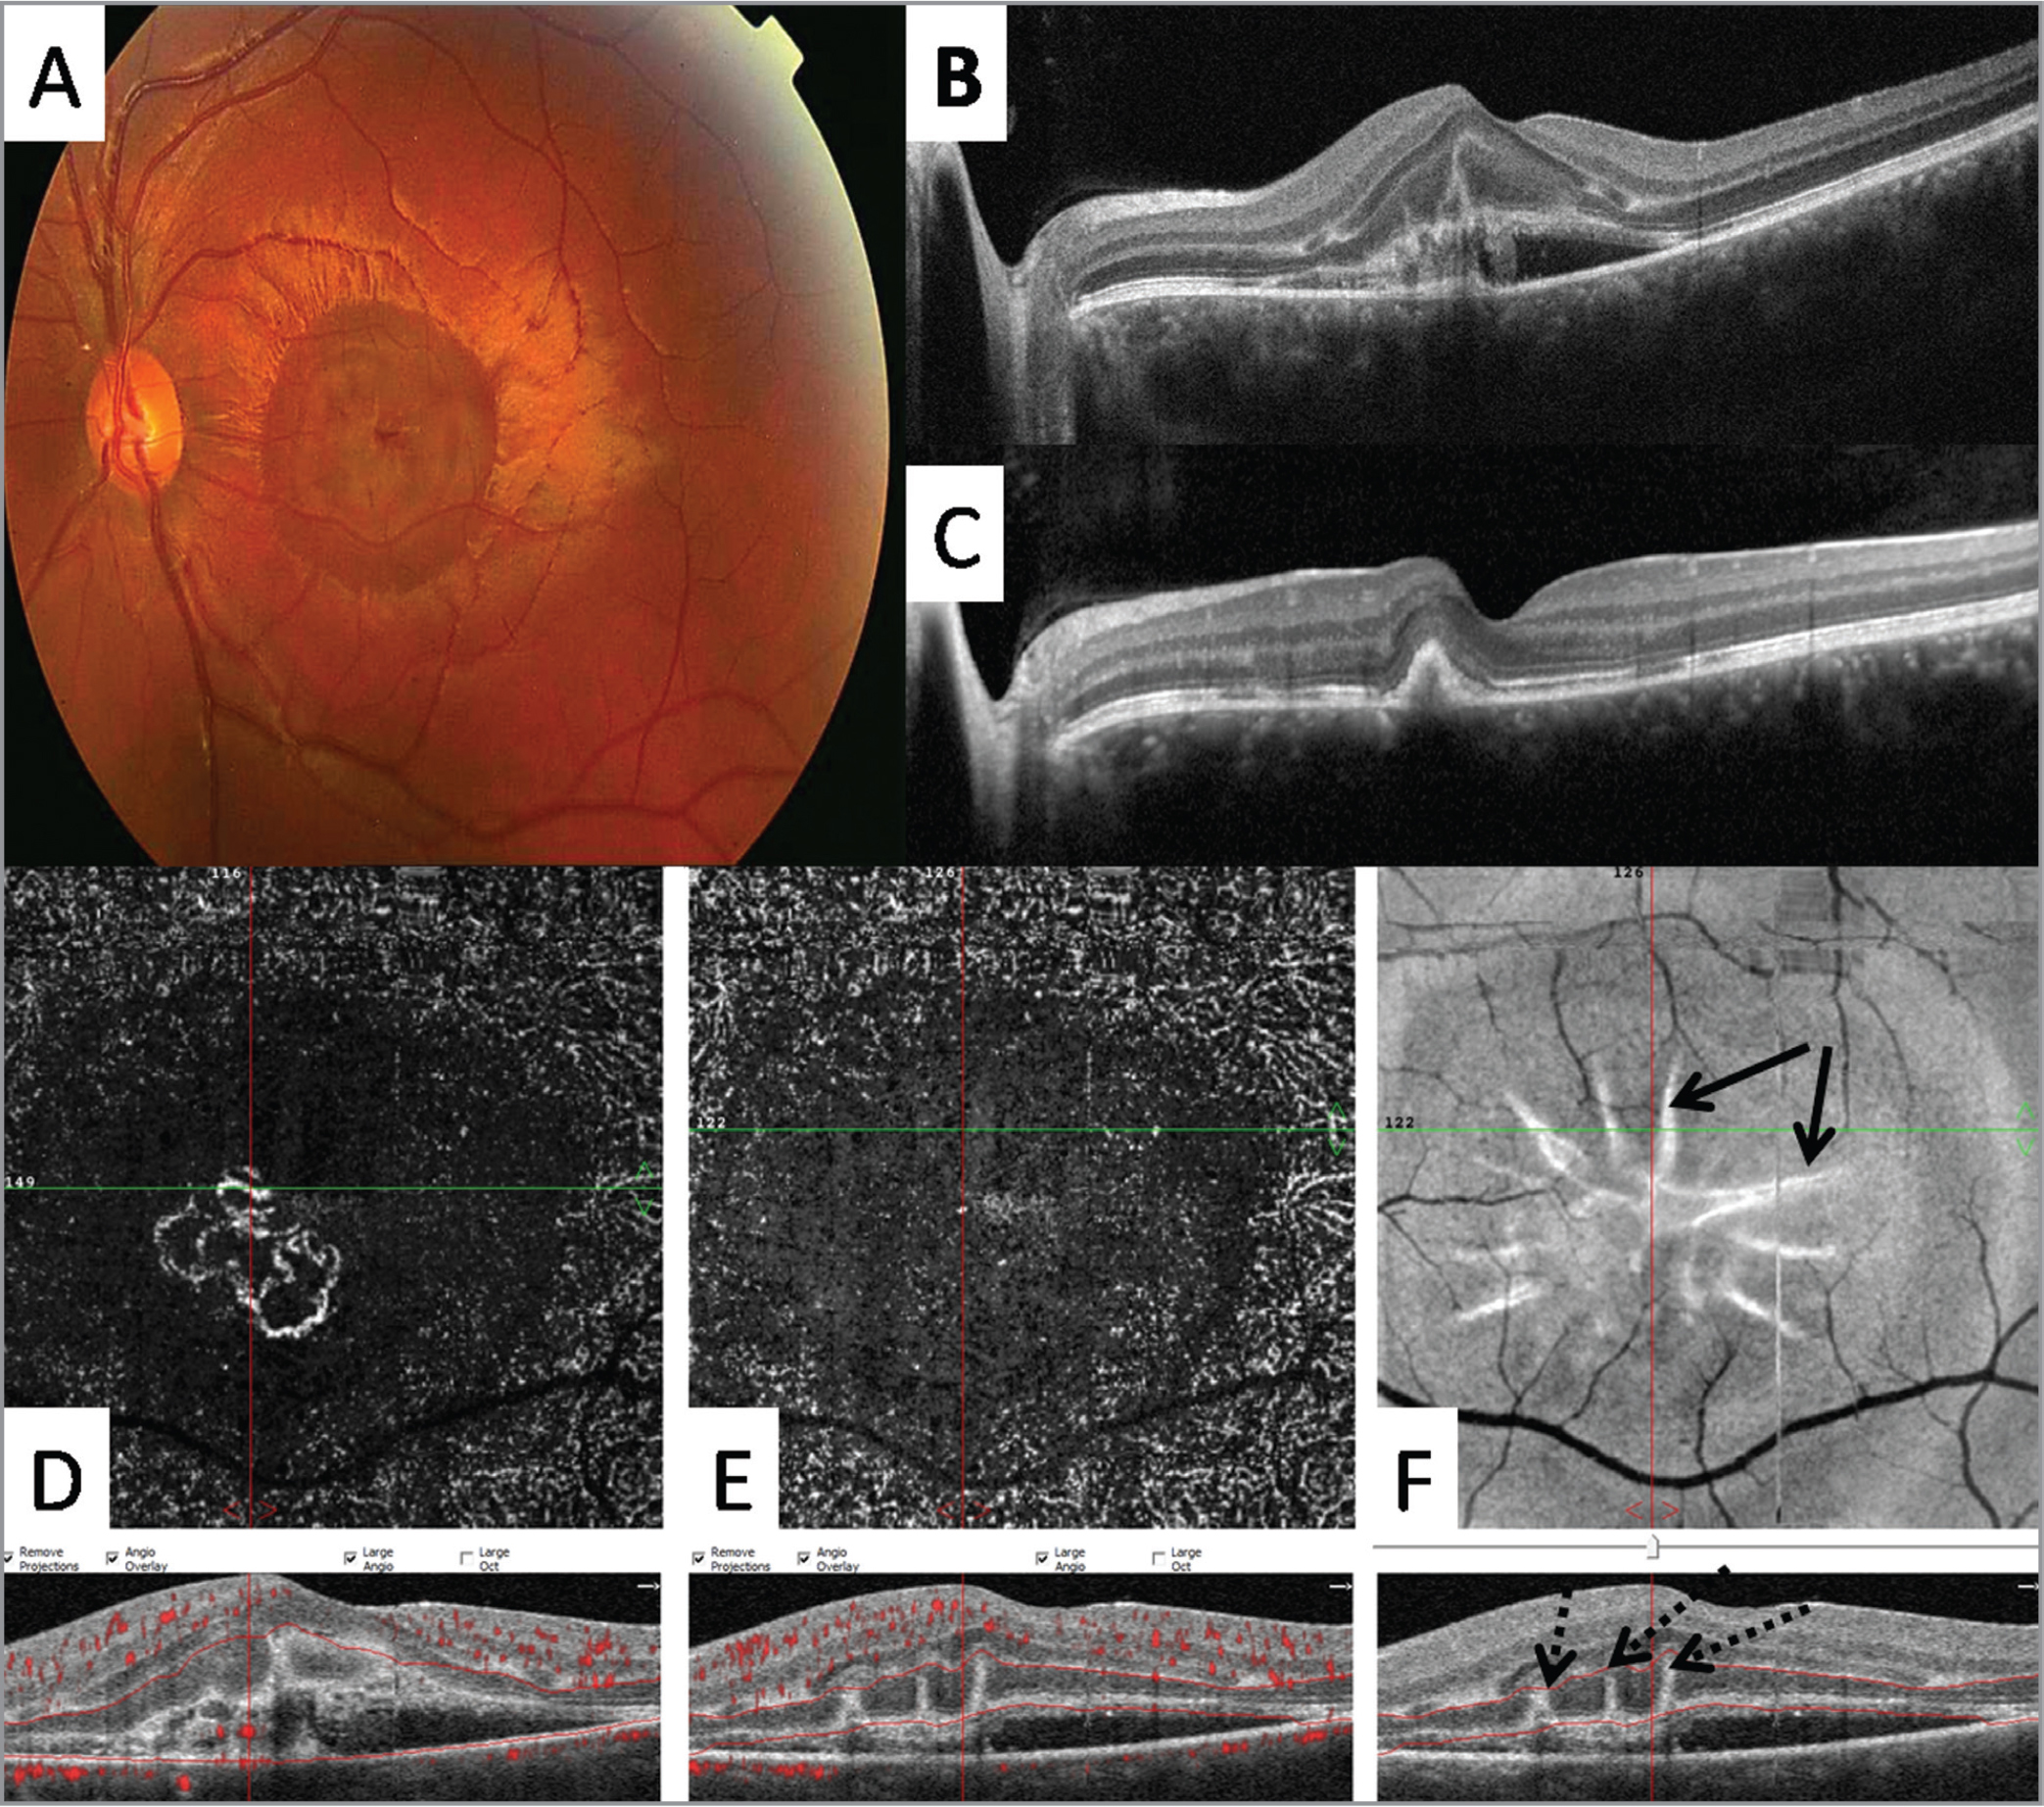 "Color fundus photography (A), optical coherence tomography (OCT) (B, C), en face OCT angiography (OCTA) (D, E), and en face structural OCT (F) images from a 10-year-old boy with laser-induced choroidal neovascularization (CNV). Linear hyperreflective lesions (ie, ""pitchfork"" sign) are noted with the baseline cross-sectional OCT (B; F, dashed arrows) but display a remarkable spiked-wreath pattern with the baseline en face OCT segmented at the level of the outer retina (F, solid arrows). The radial hyperreflective spikes resolved after intravitreal bevacizumab therapy (C). Note the evolution into a type 1 CNV lesion (C). Type 2 CNV is identified with en face OCTA (D). No vascular flow signal is noted corresponding to the hyperreflective spikes with the baseline en face OCTA image (E)."